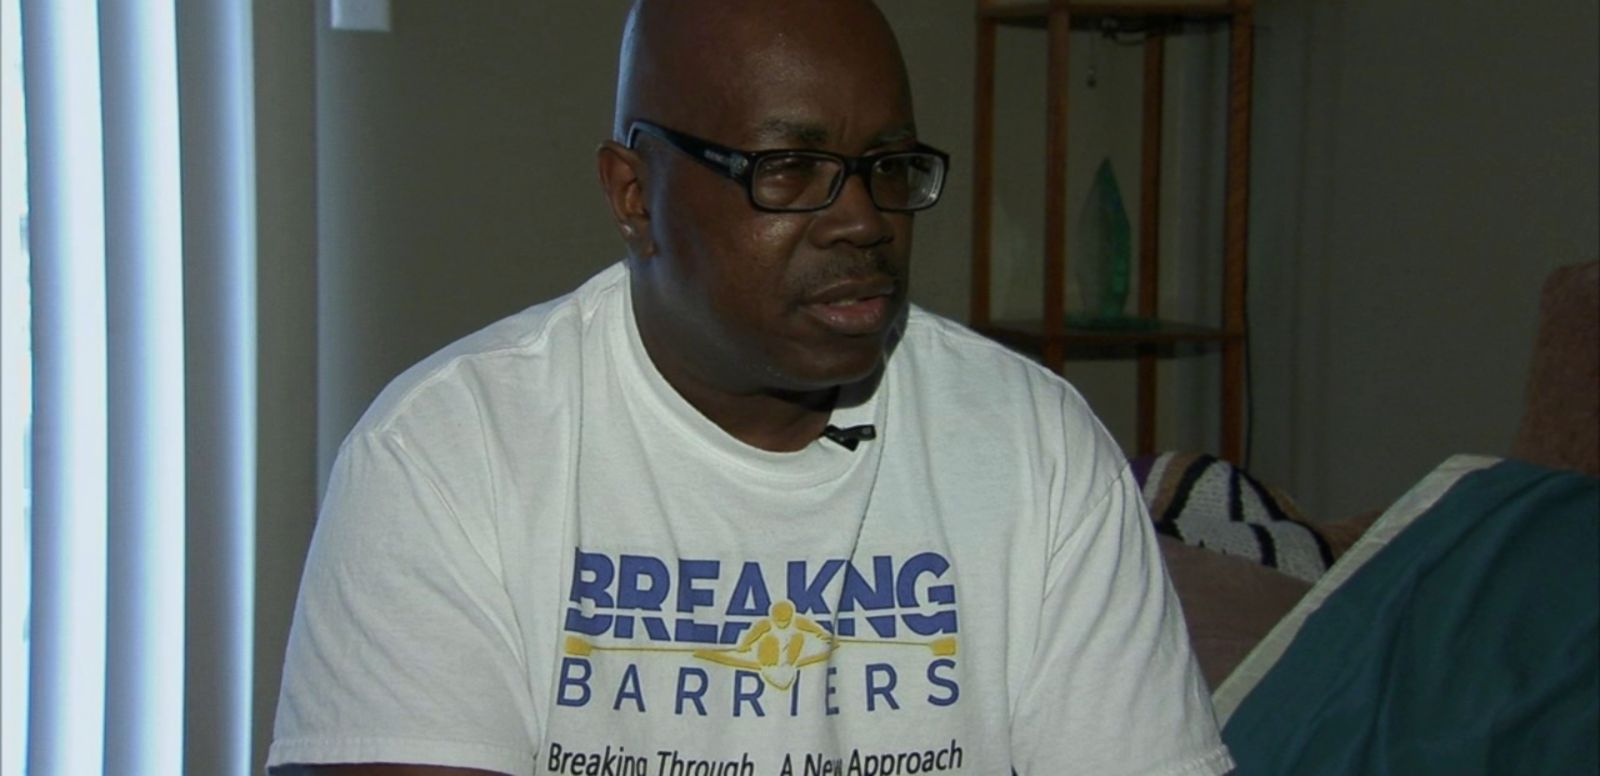 VIDEO: Dwayne Adams was caught in the crossfire of bullets while sitting on his mother's porch in 1998.